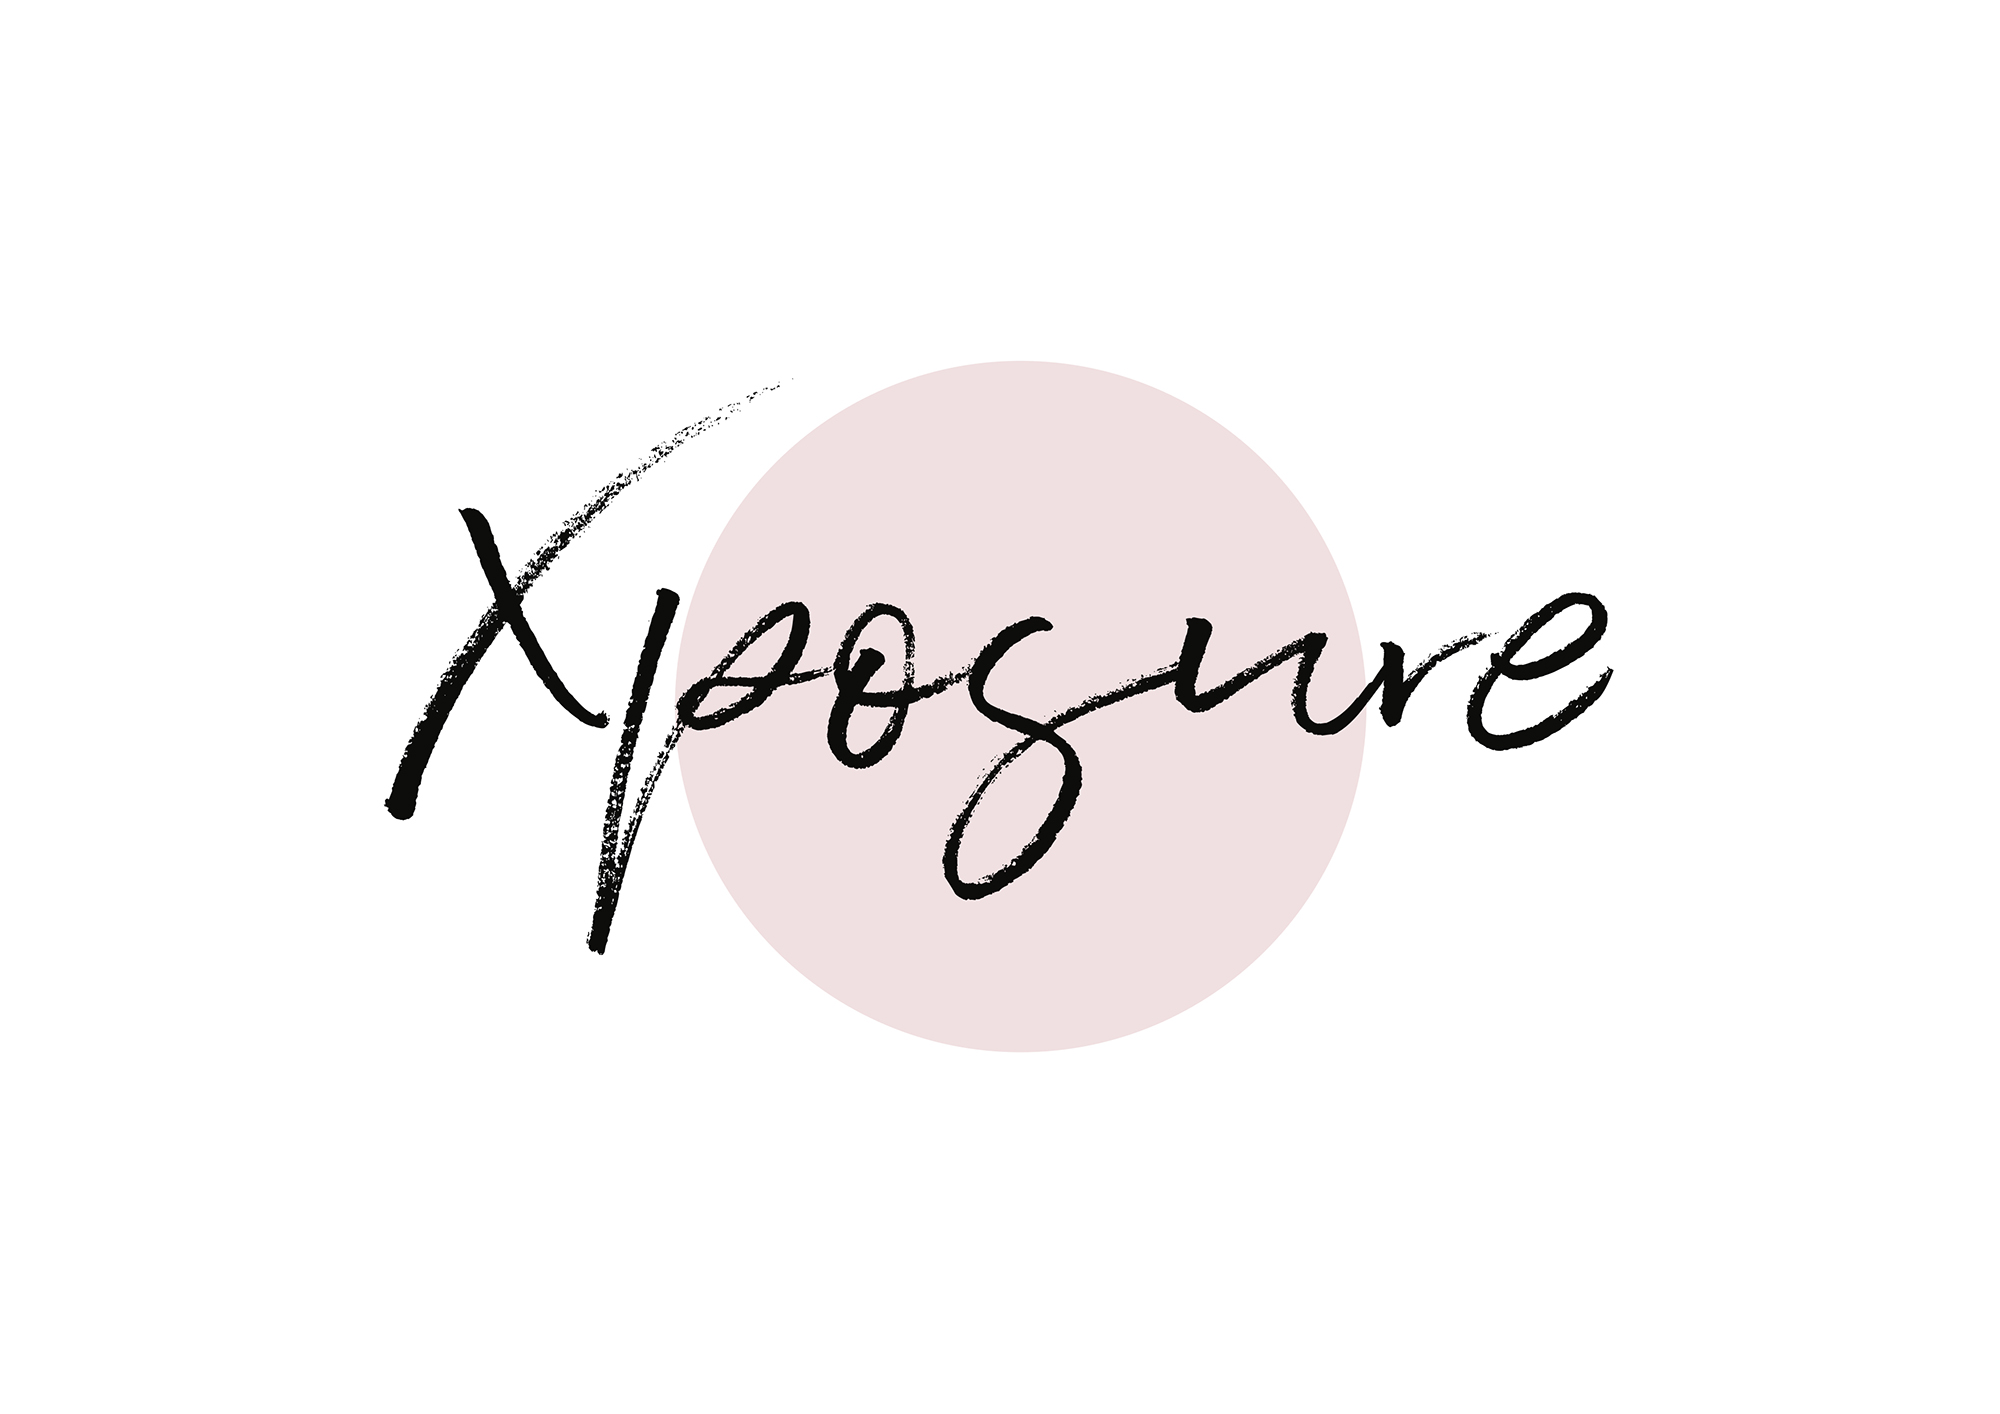 Xposure studios logo boudoir makeover photography studio liverpool city centre